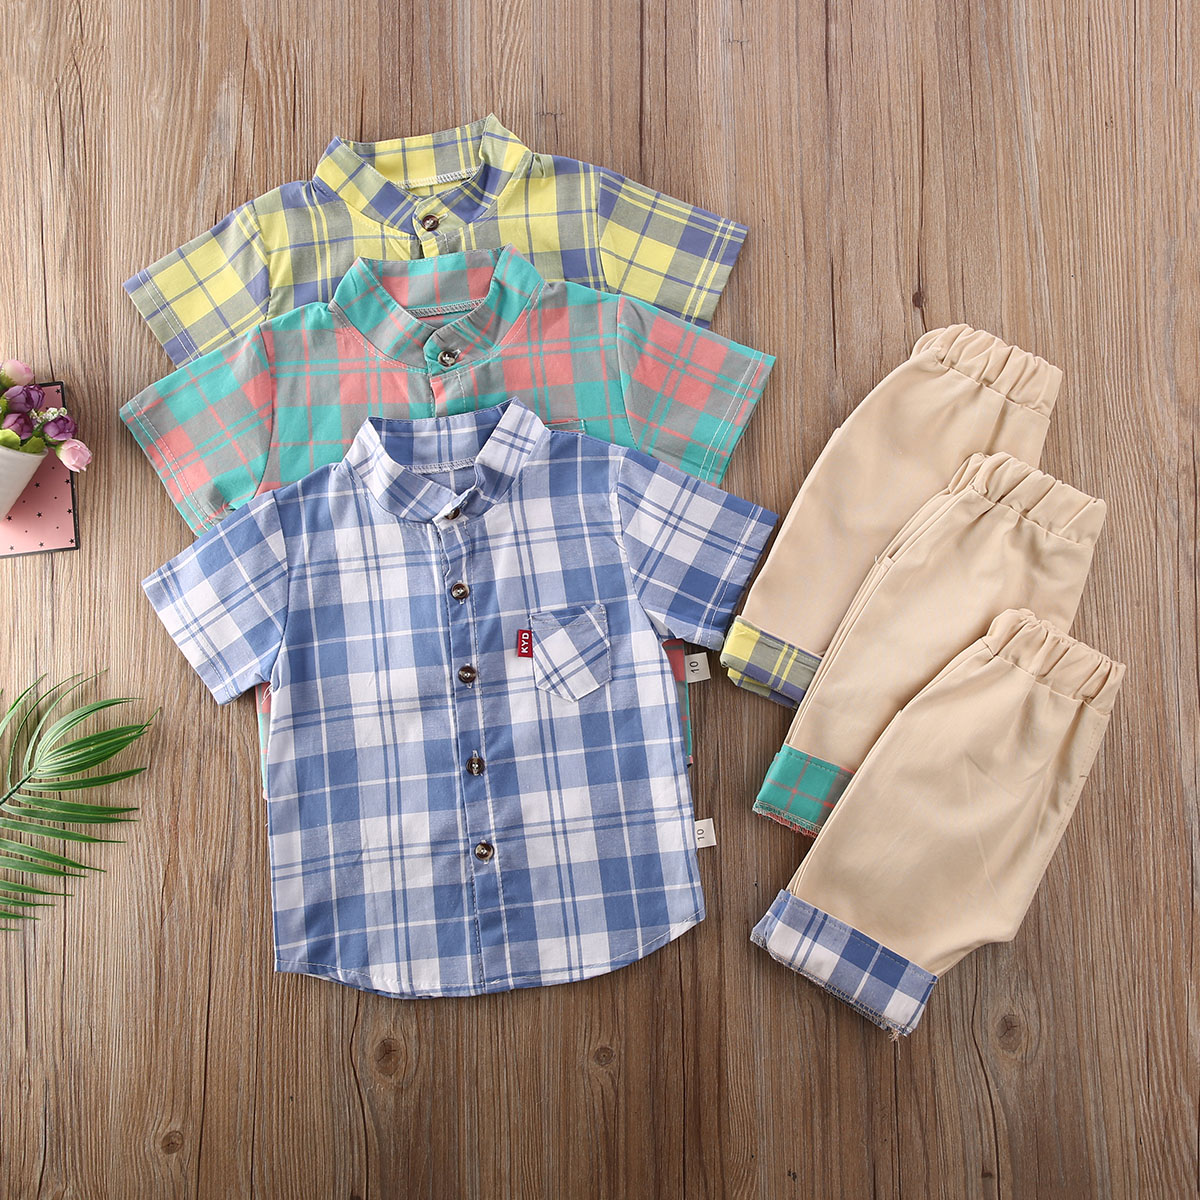 0-3Y Summer Toddler Baby Boy Outfits Clothes Sets Plaid Print Tops Shirt Shorts Pants Gentleman Party Suit